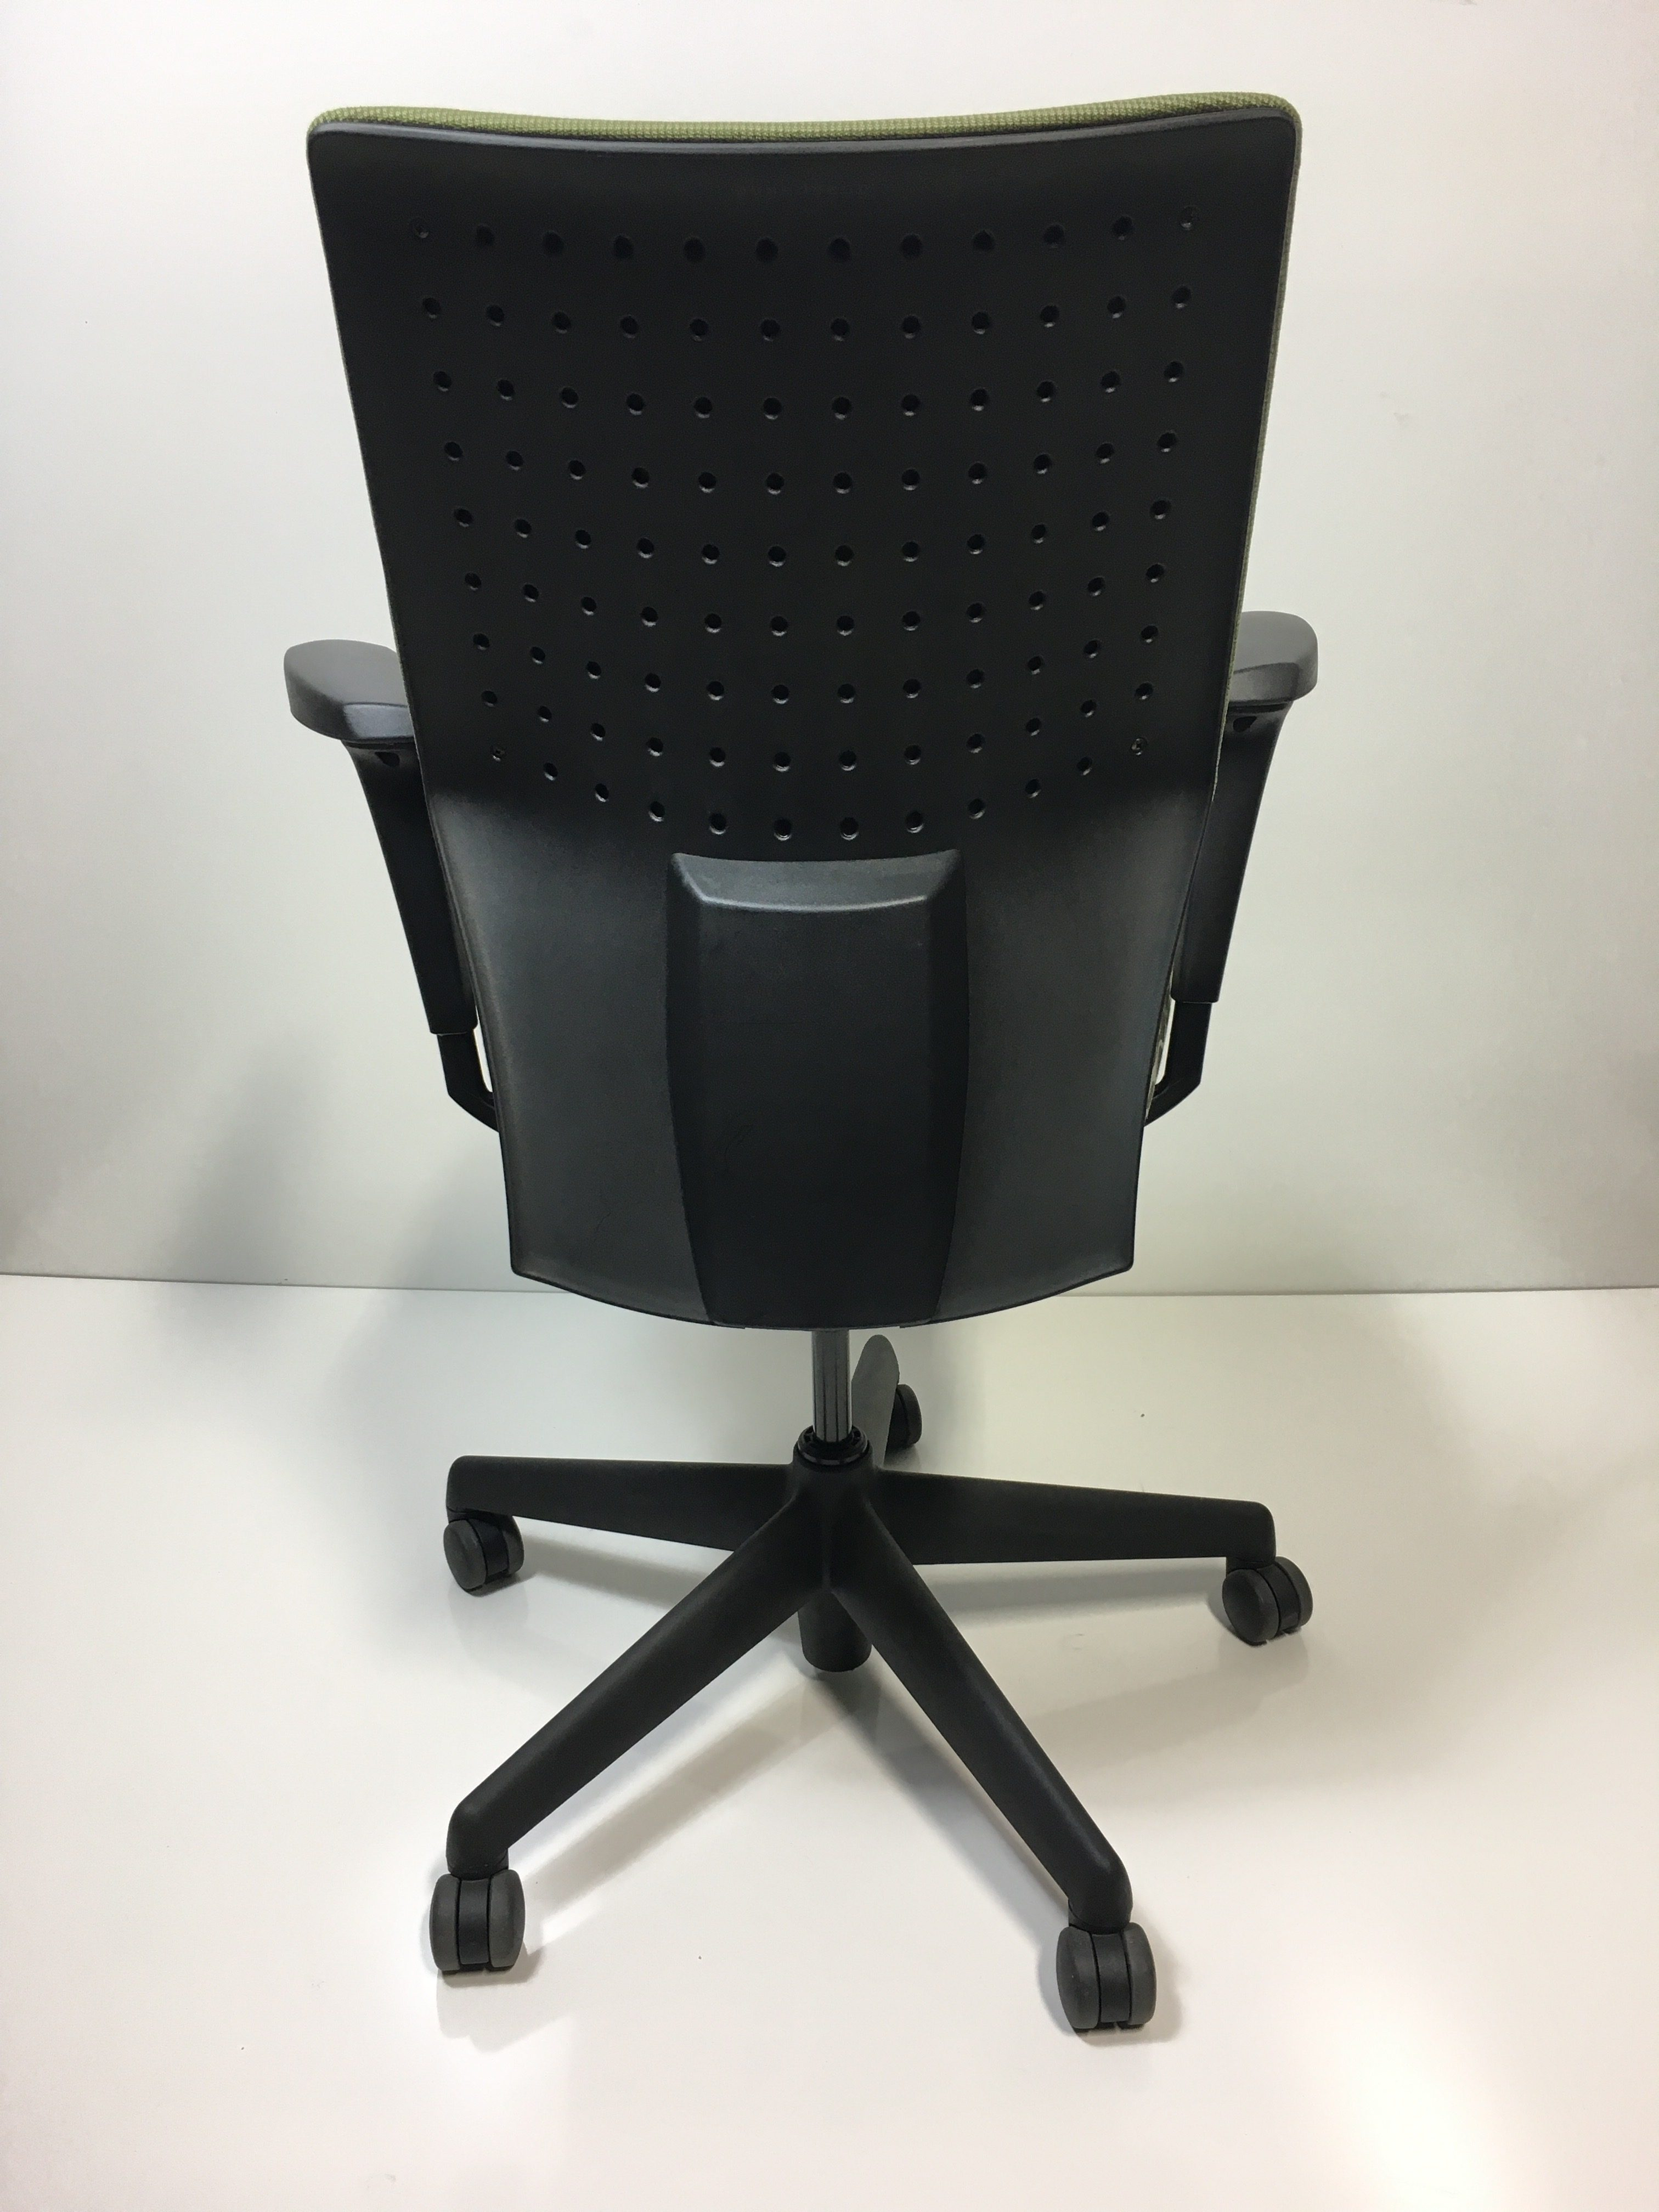 Astounding Keilhauer Brand Office Chair 3 Mp Caraccident5 Cool Chair Designs And Ideas Caraccident5Info